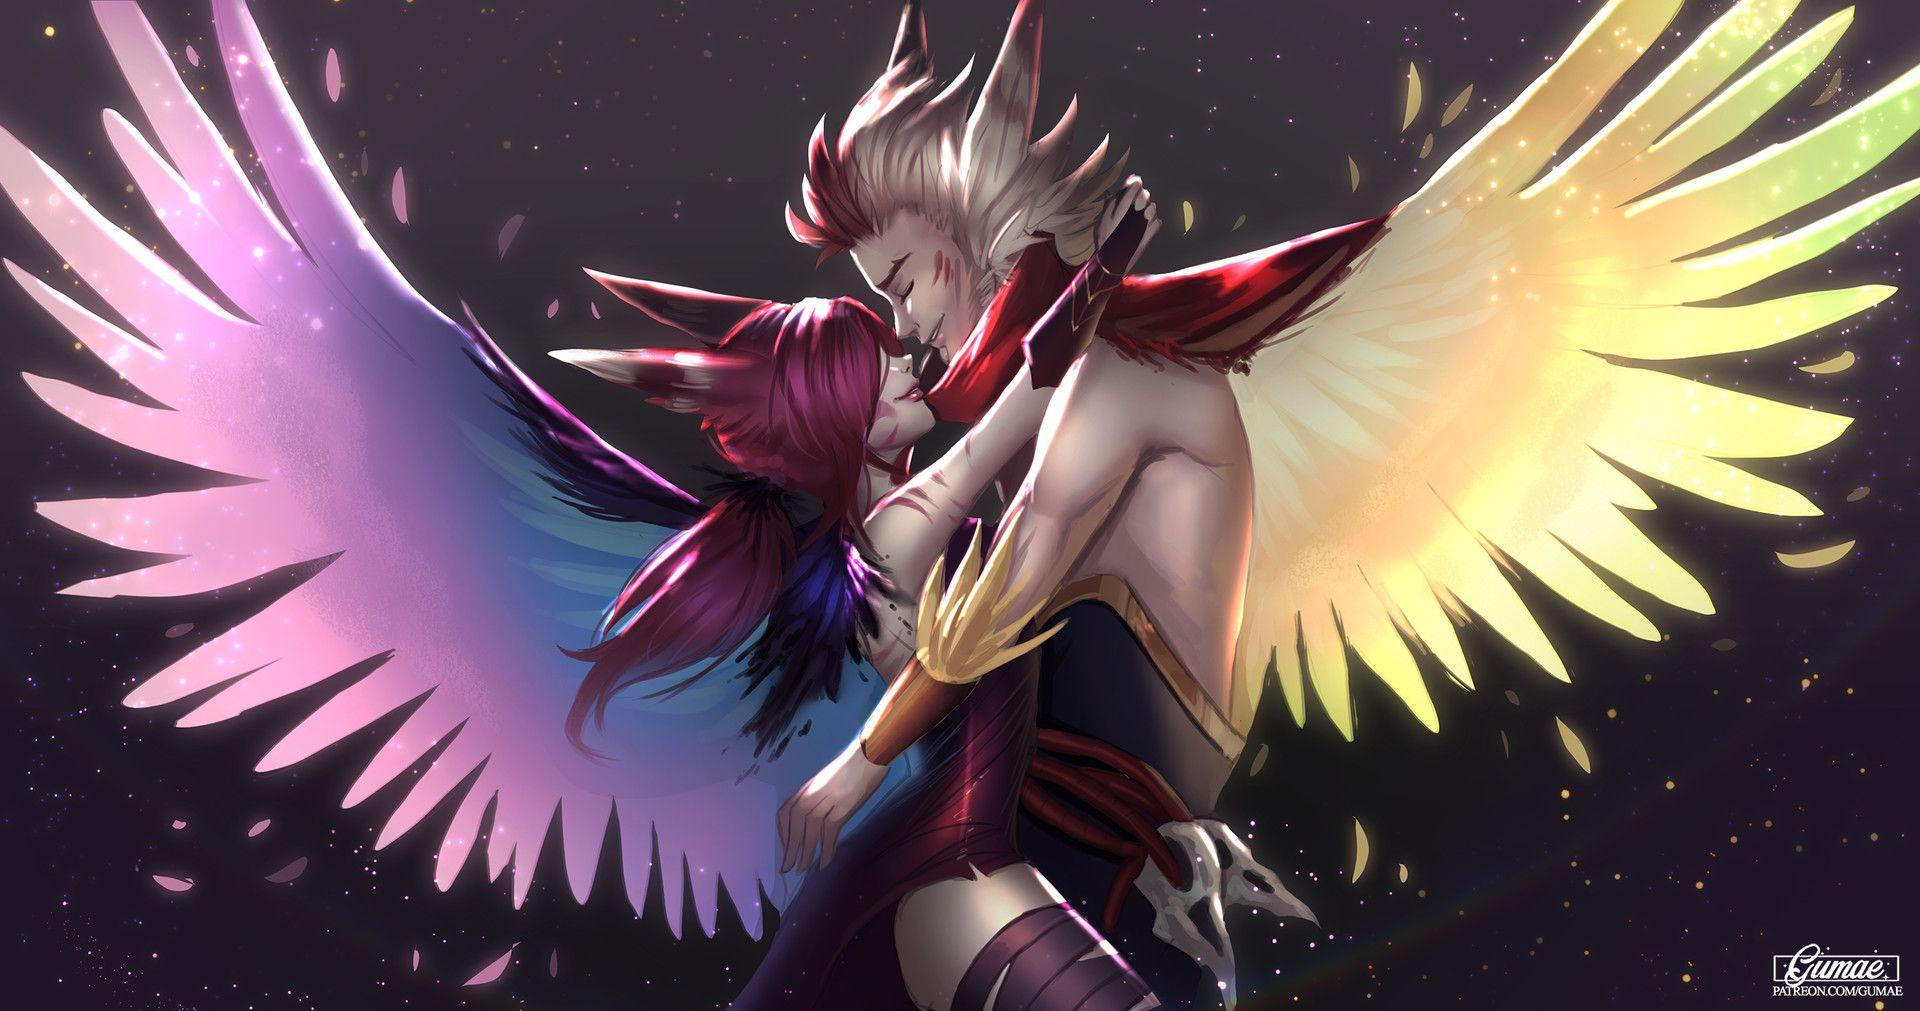 ArtStation - Xayah & Rakan, Mary Montés | League of Legend | Pinterest